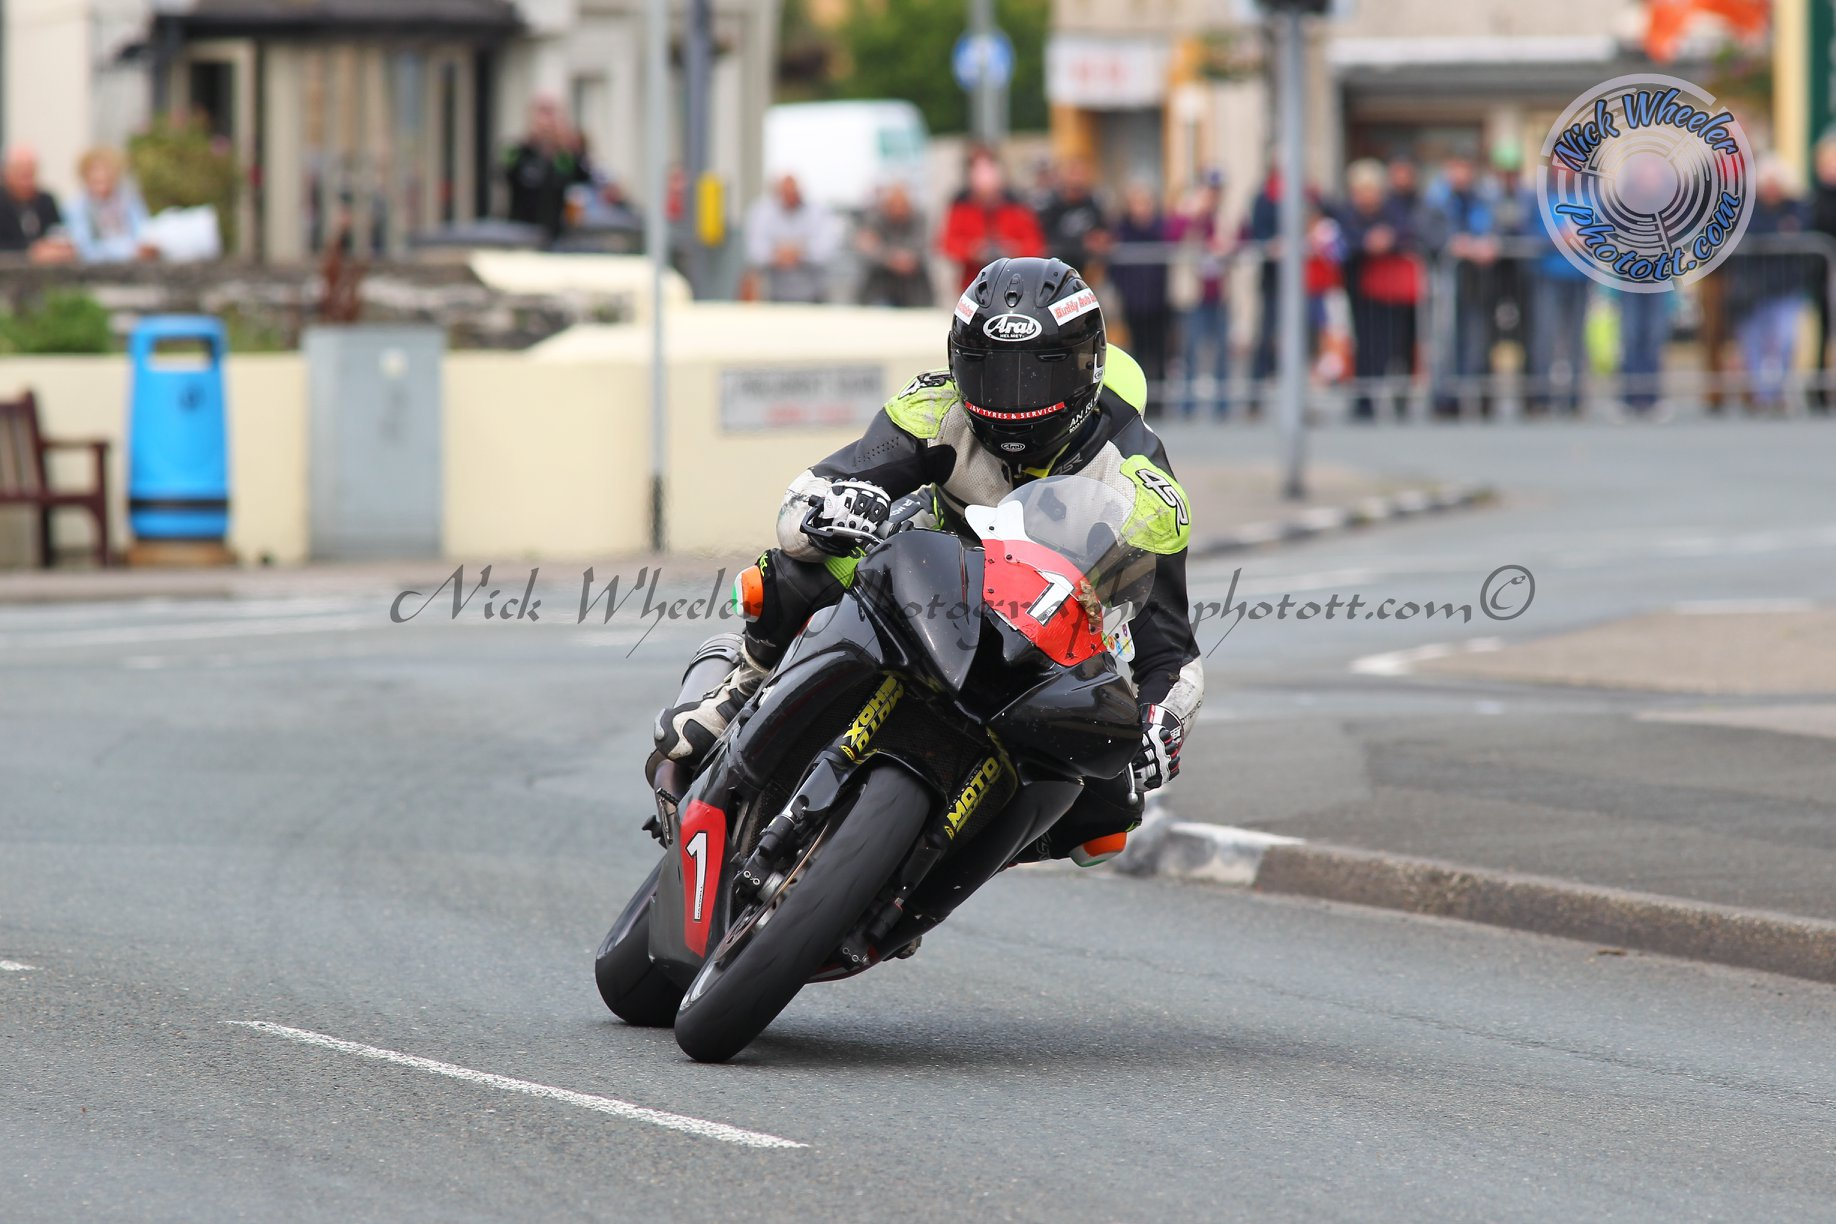 Manx GP Live Streaming Site Breaks Cover